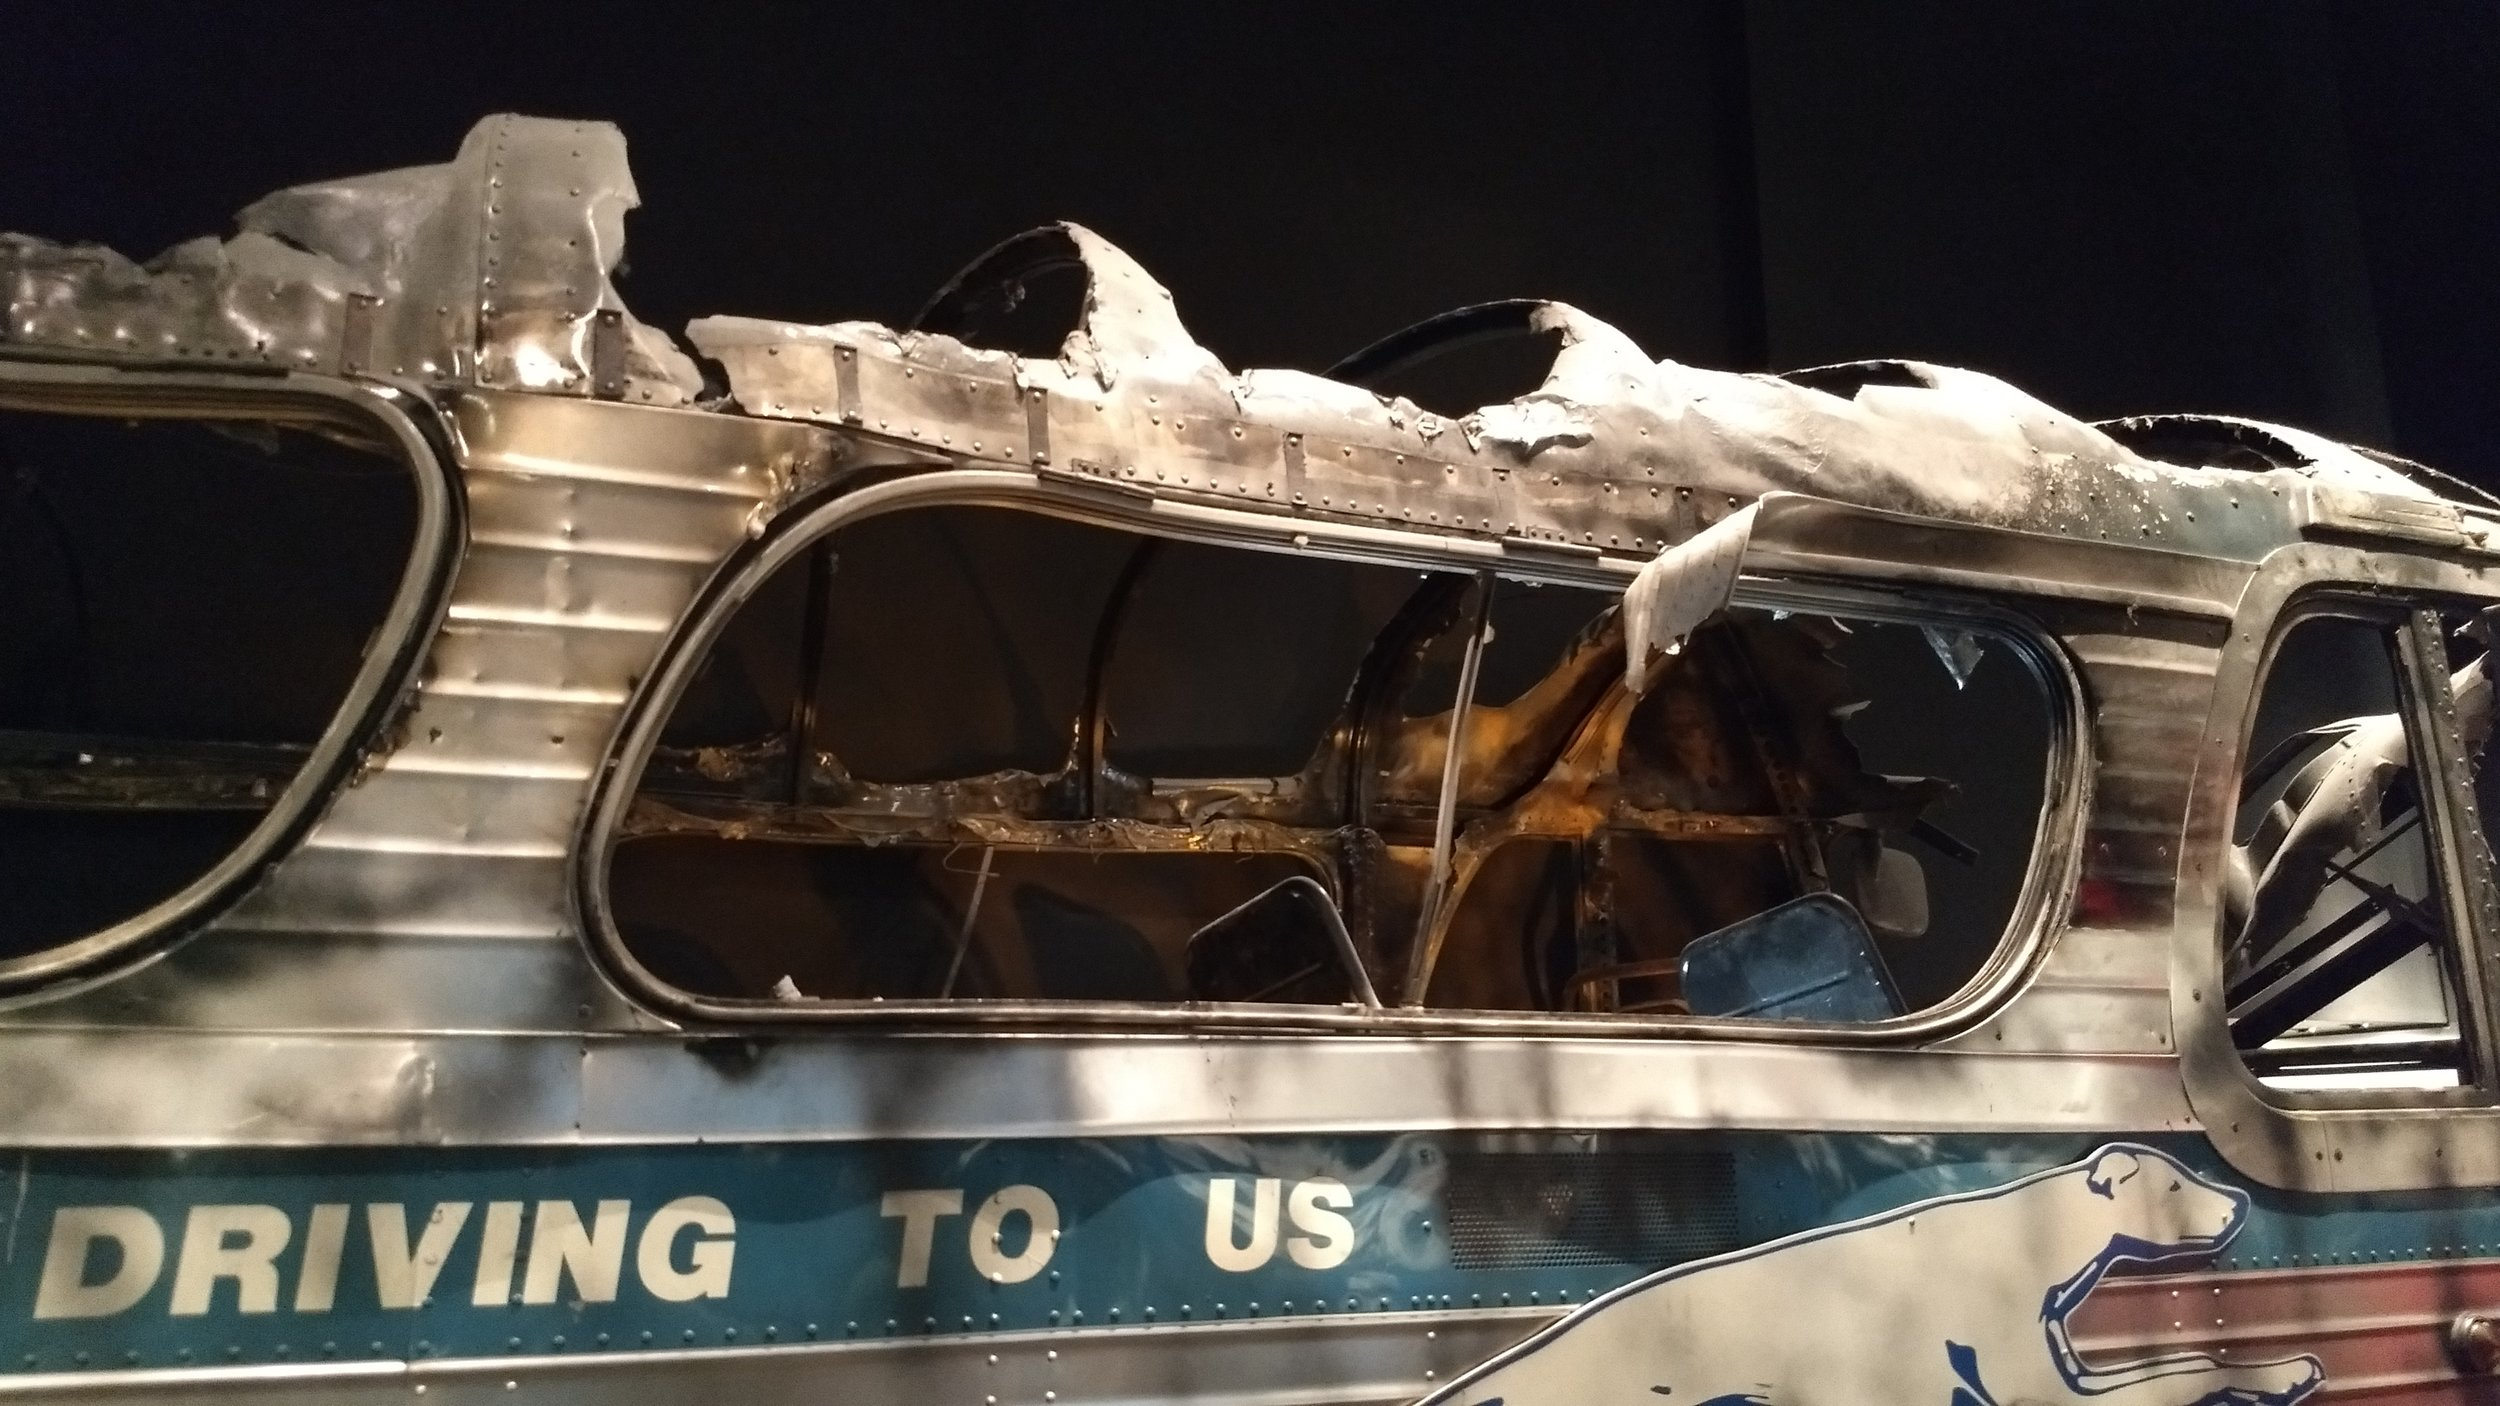 Bus burned when freedom riders were attacked in Anniston, AL